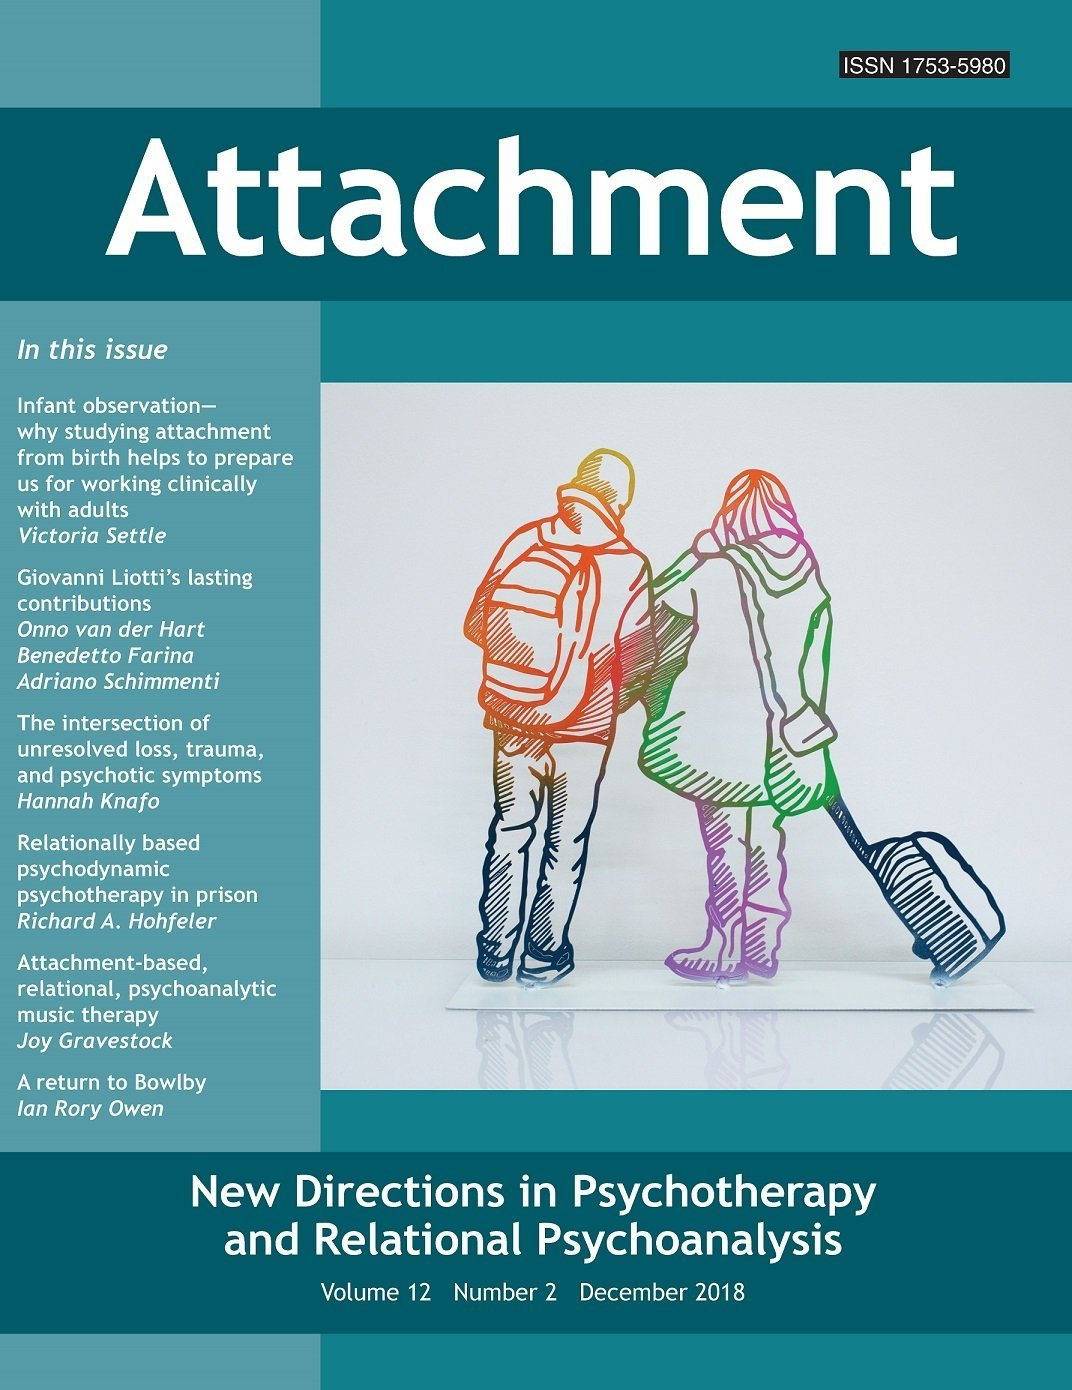 Attachment: New Directions in Psychotherapy and Relational Psychoanalysis - Vol.12 No.2